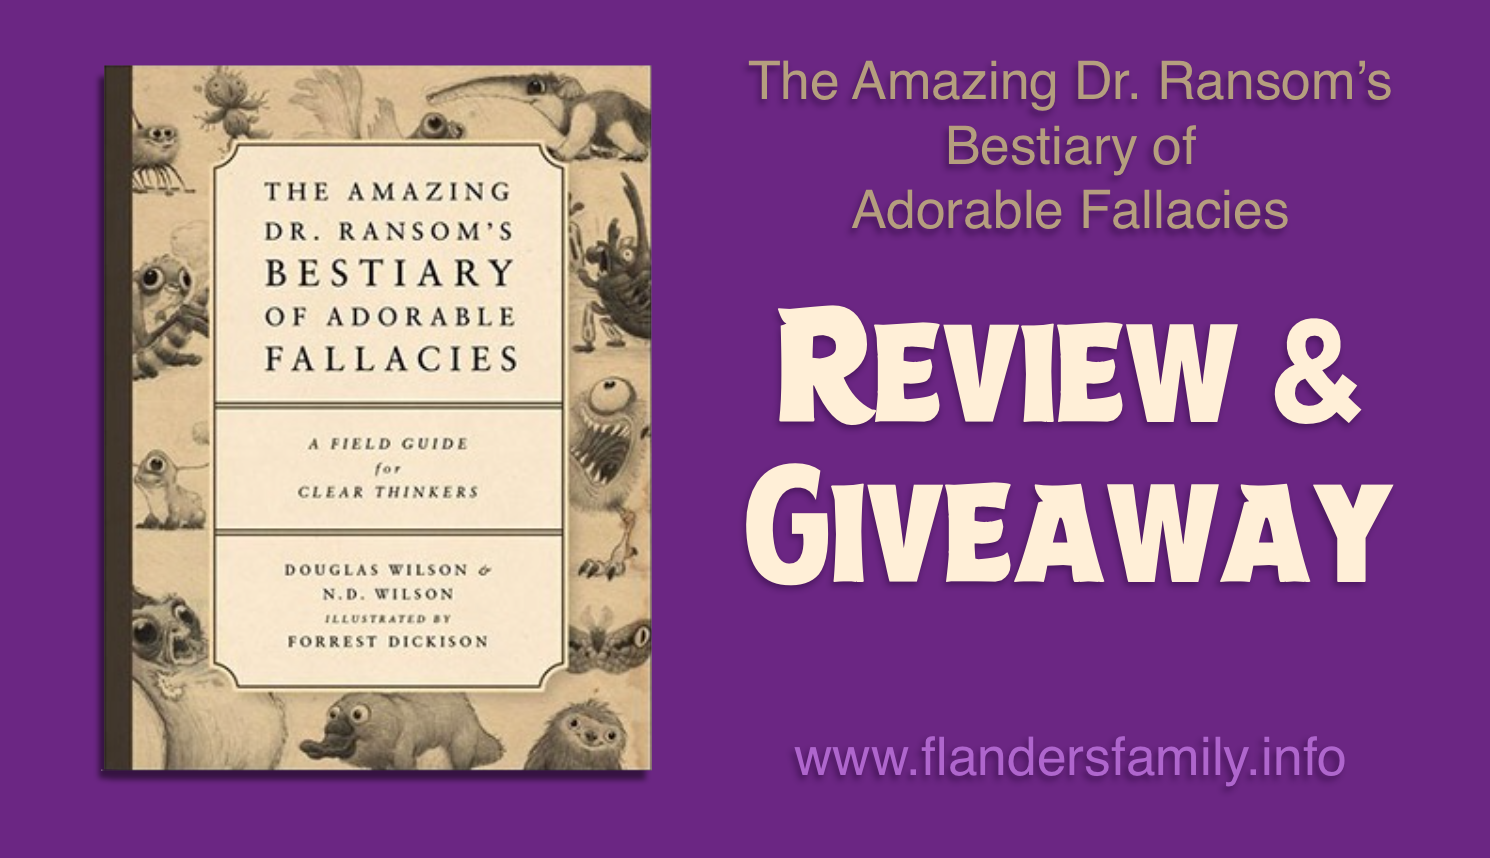 Bestiary of Adorable Fallacies (Review & Giveaway)